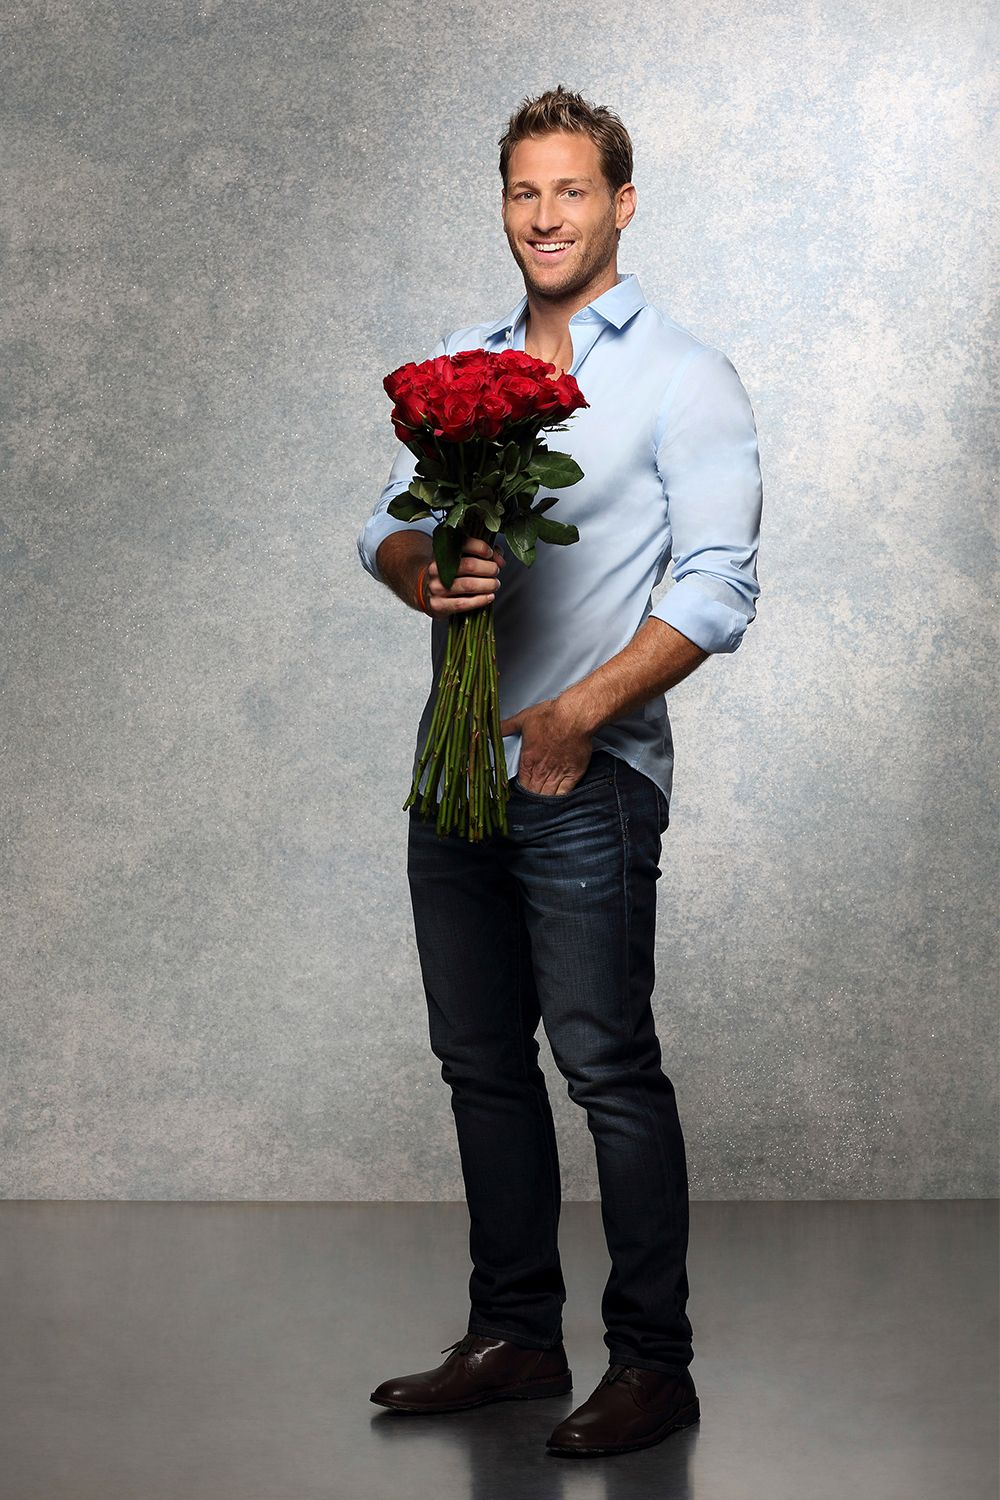 Juan Pablo Galavis ('The Bachelor' Season 18) This.